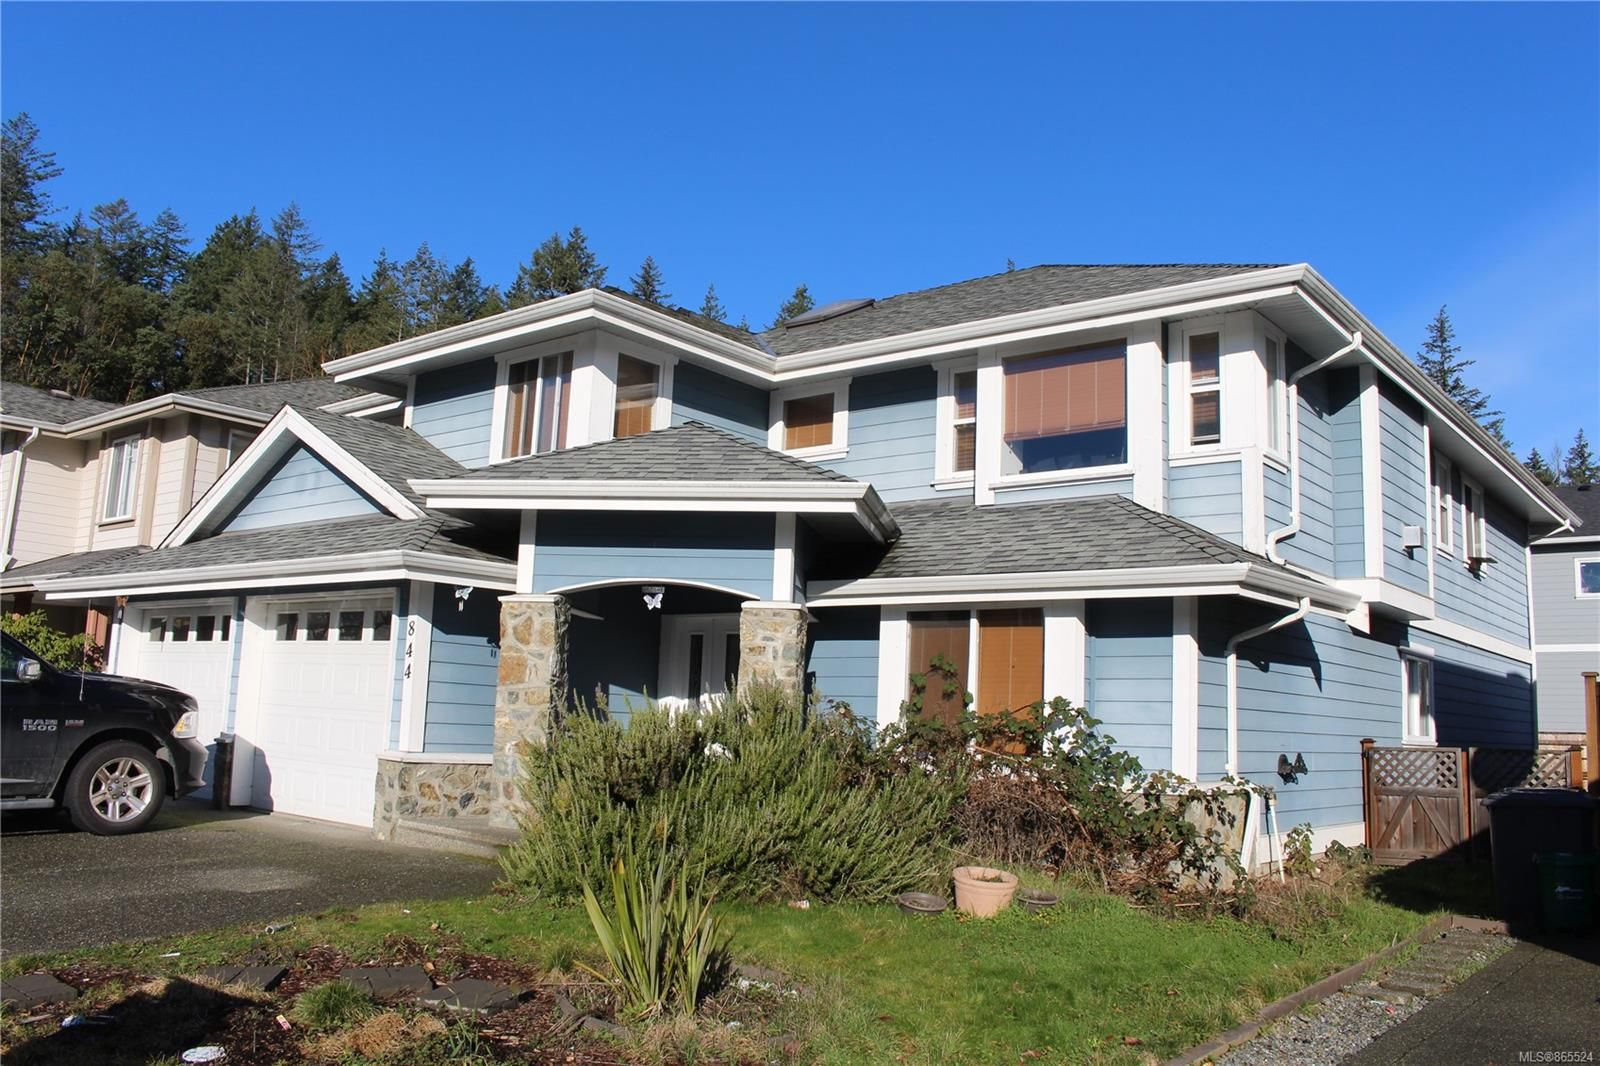 Main Photo: 844 Pintail Pl in : La Bear Mountain House for sale (Langford)  : MLS®# 865524